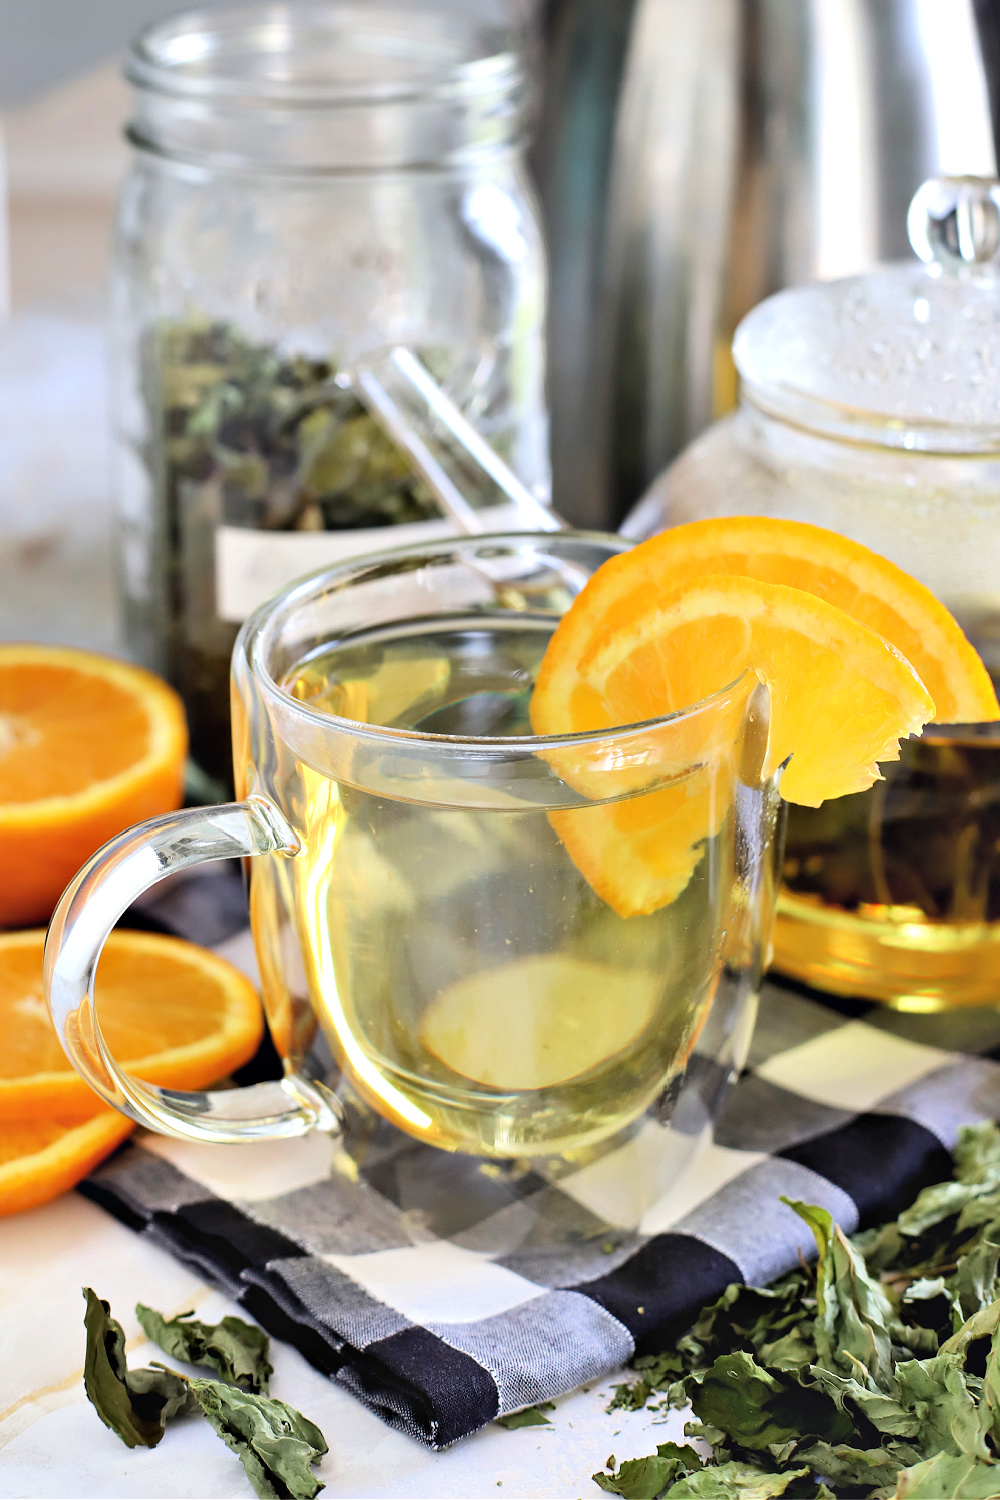 Make a lovely cup of hot or iced orange mint tea using this easy-to-grow plant from your herb garden. Care, harvesting and drying how-to for use in beverages, salads and desserts.